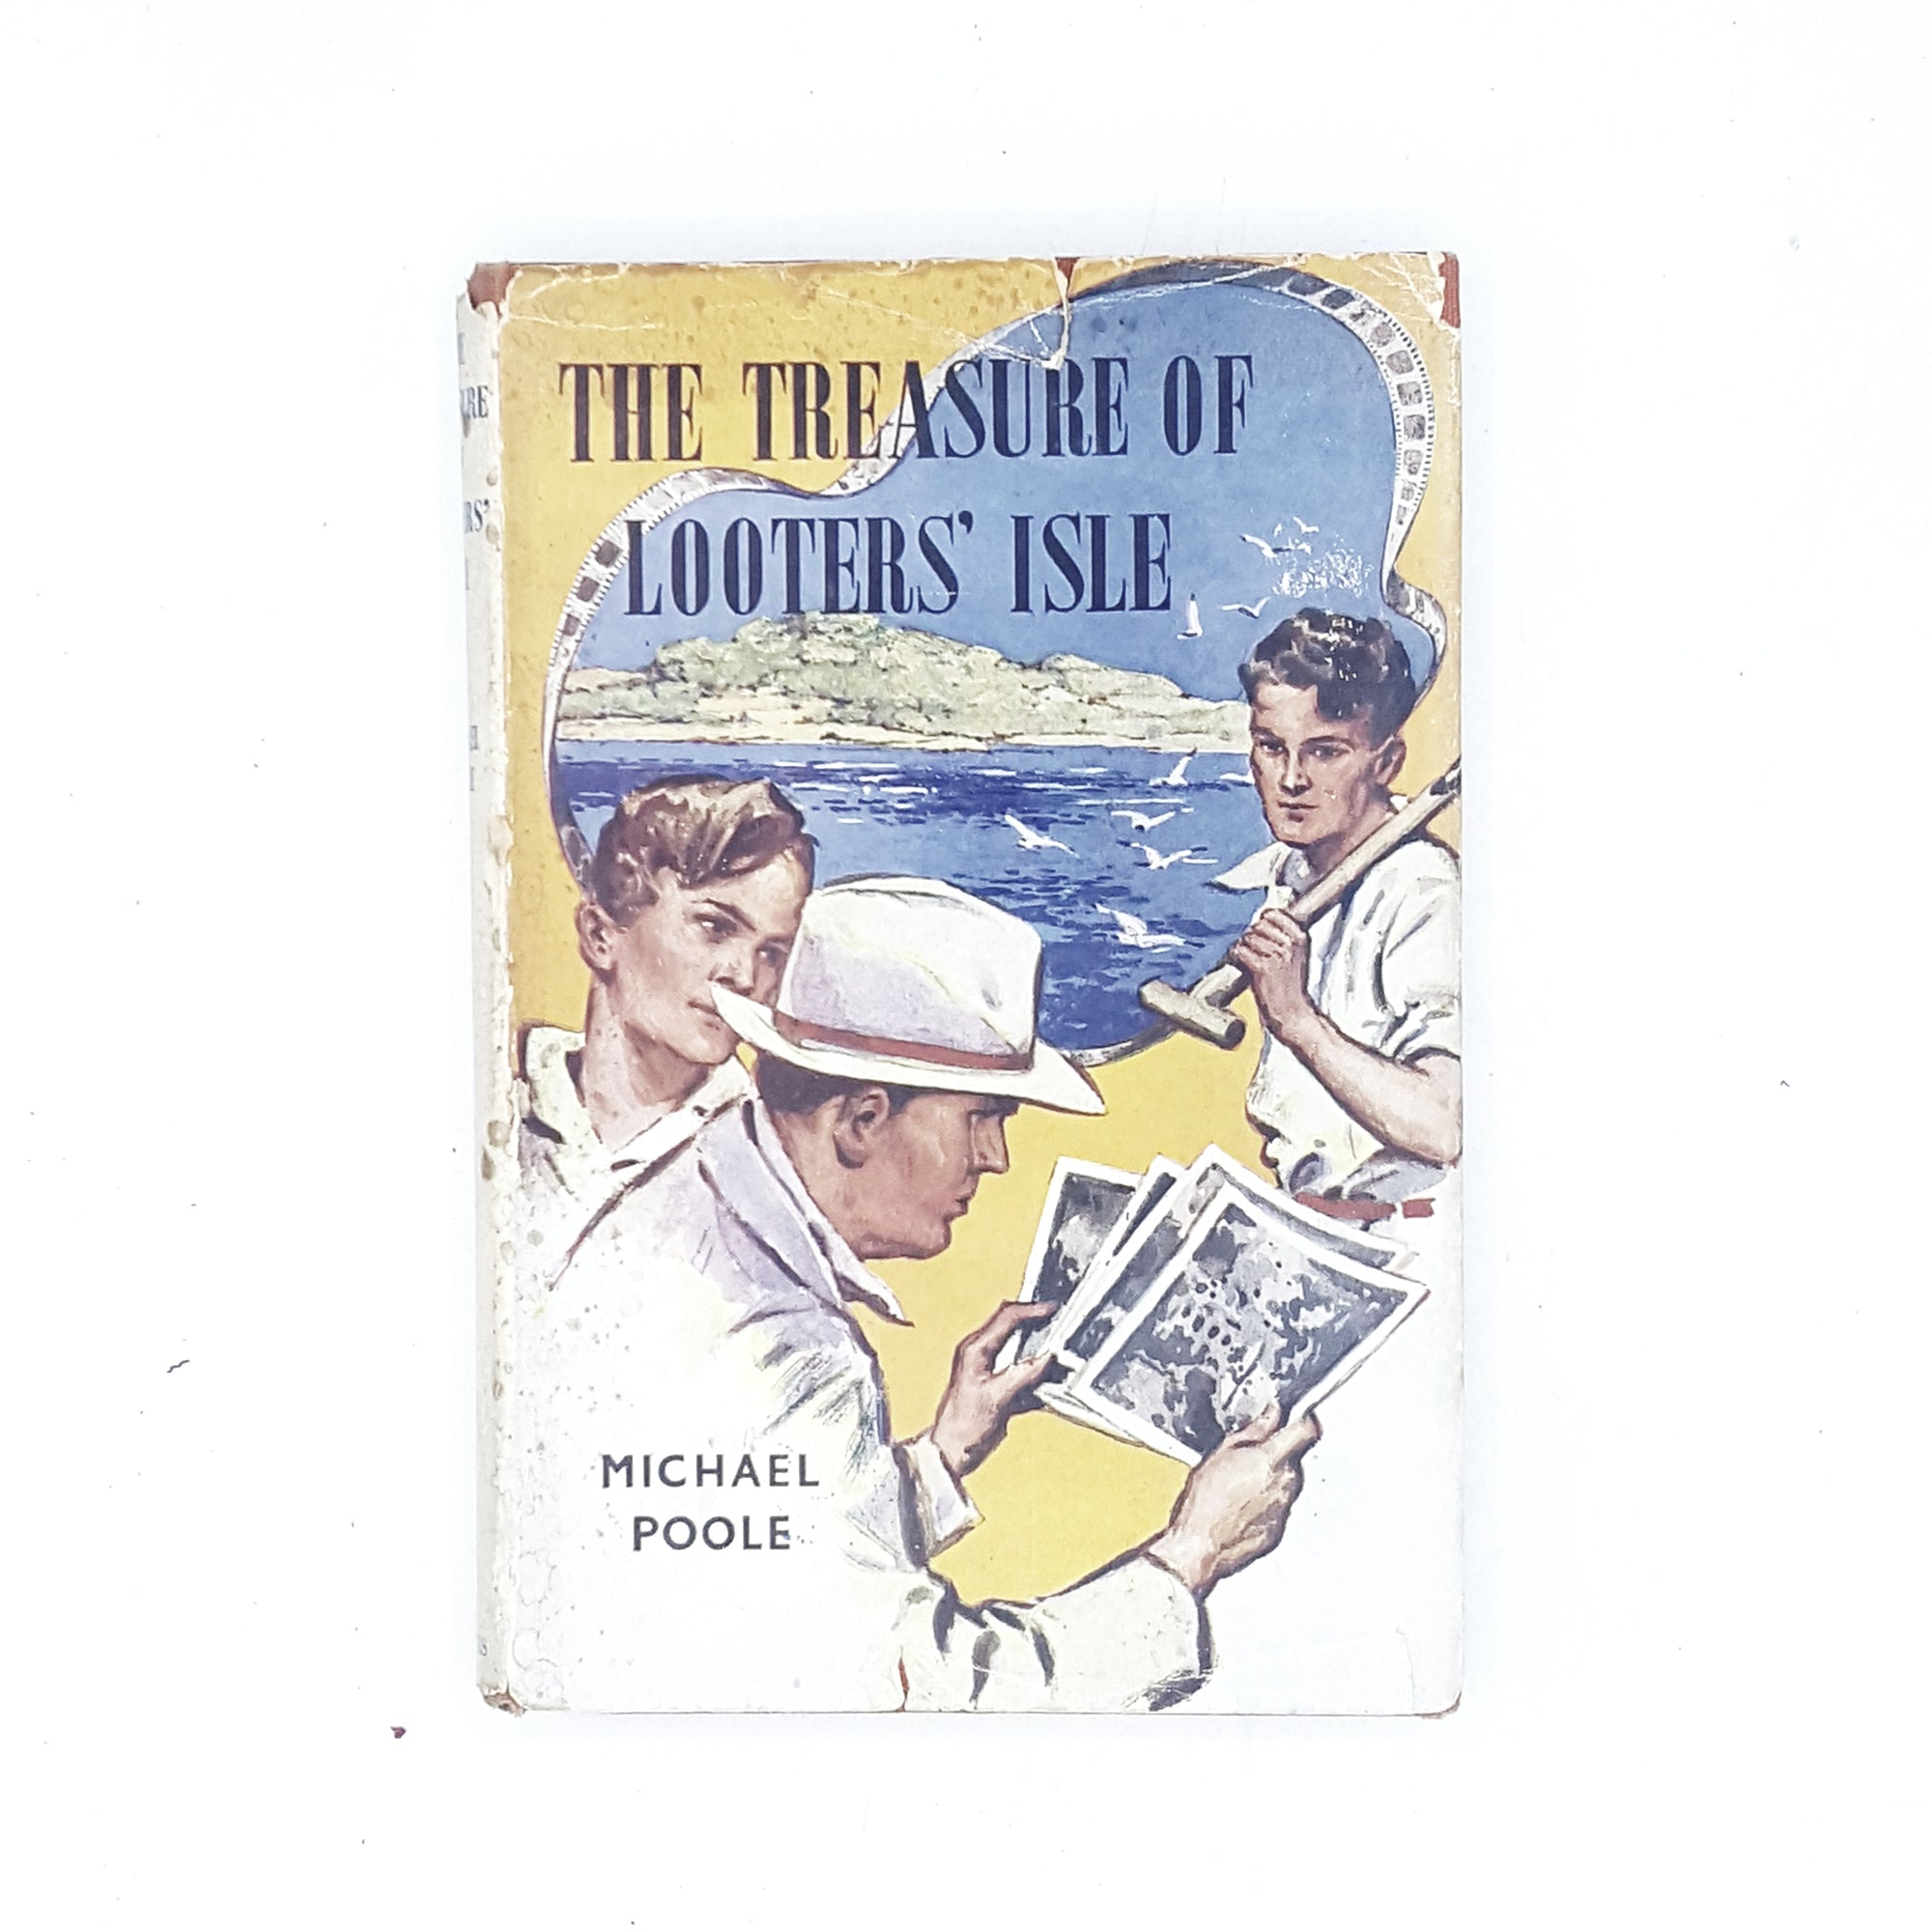 The Treasure of Looters' Isle by Michael Poole 1949